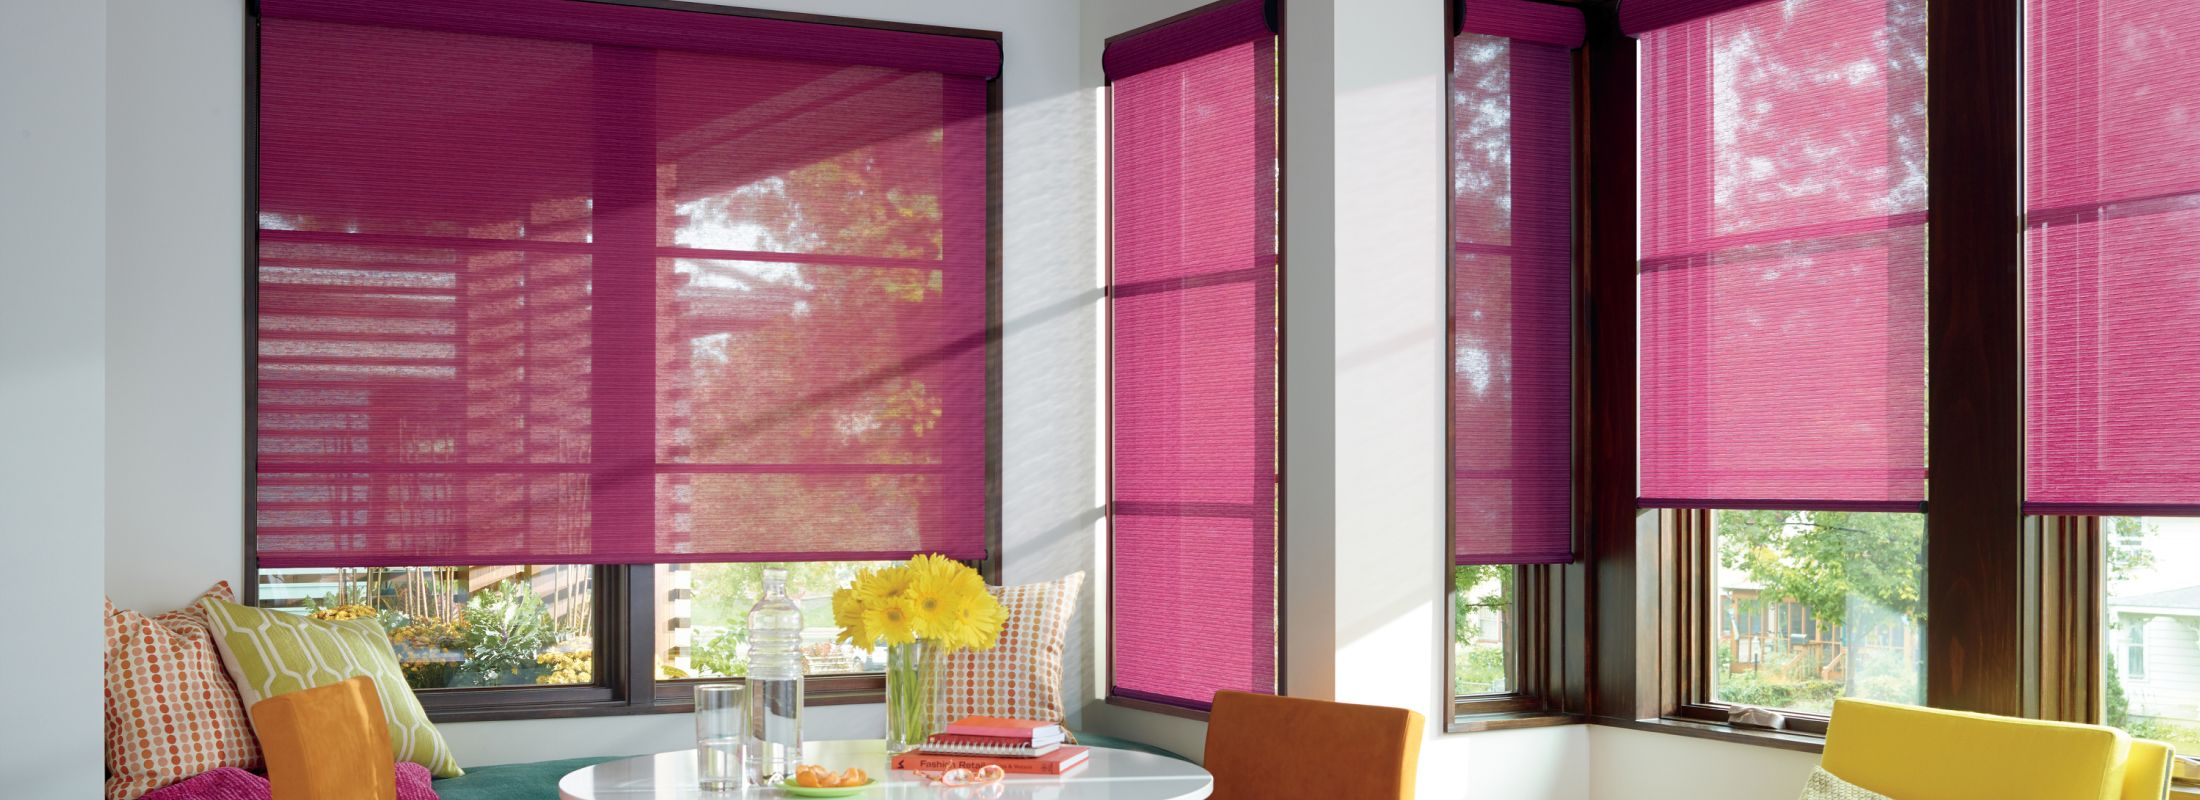 Roller curtains in Alexander Fuschia - Designer Roller Shades